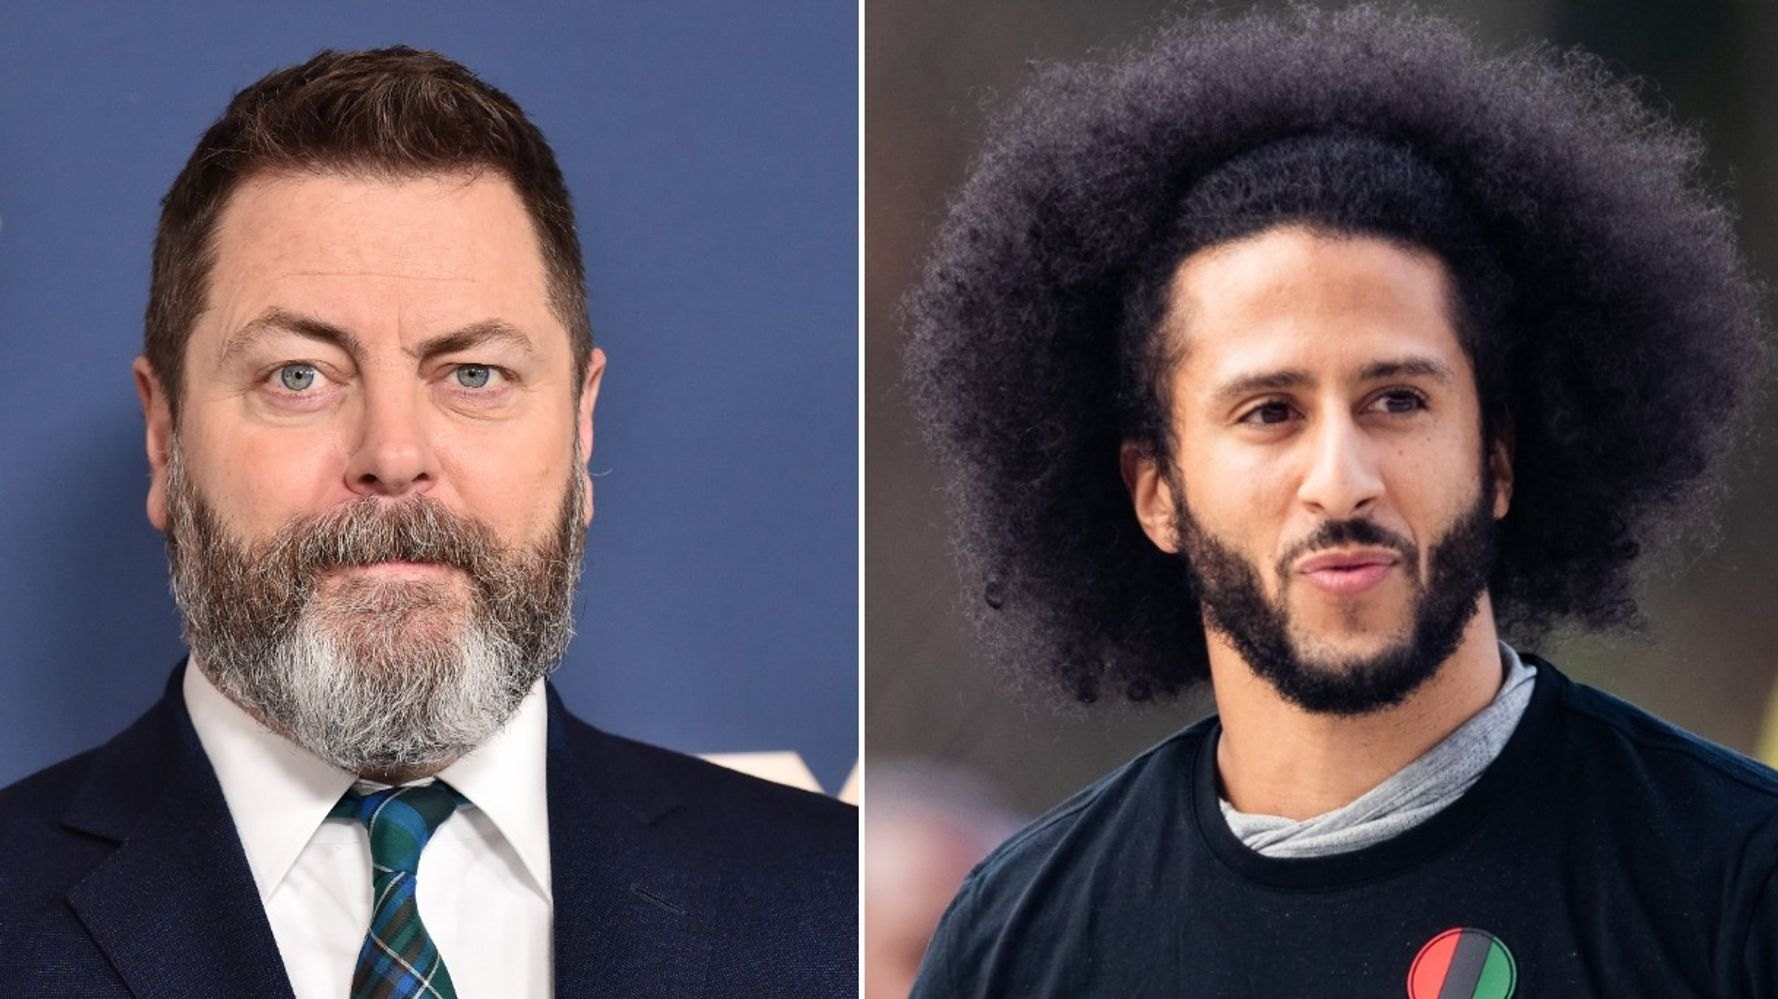 Nick Offerman Calls Colin Kaepernick His Hero After Being Cast In Series About Him